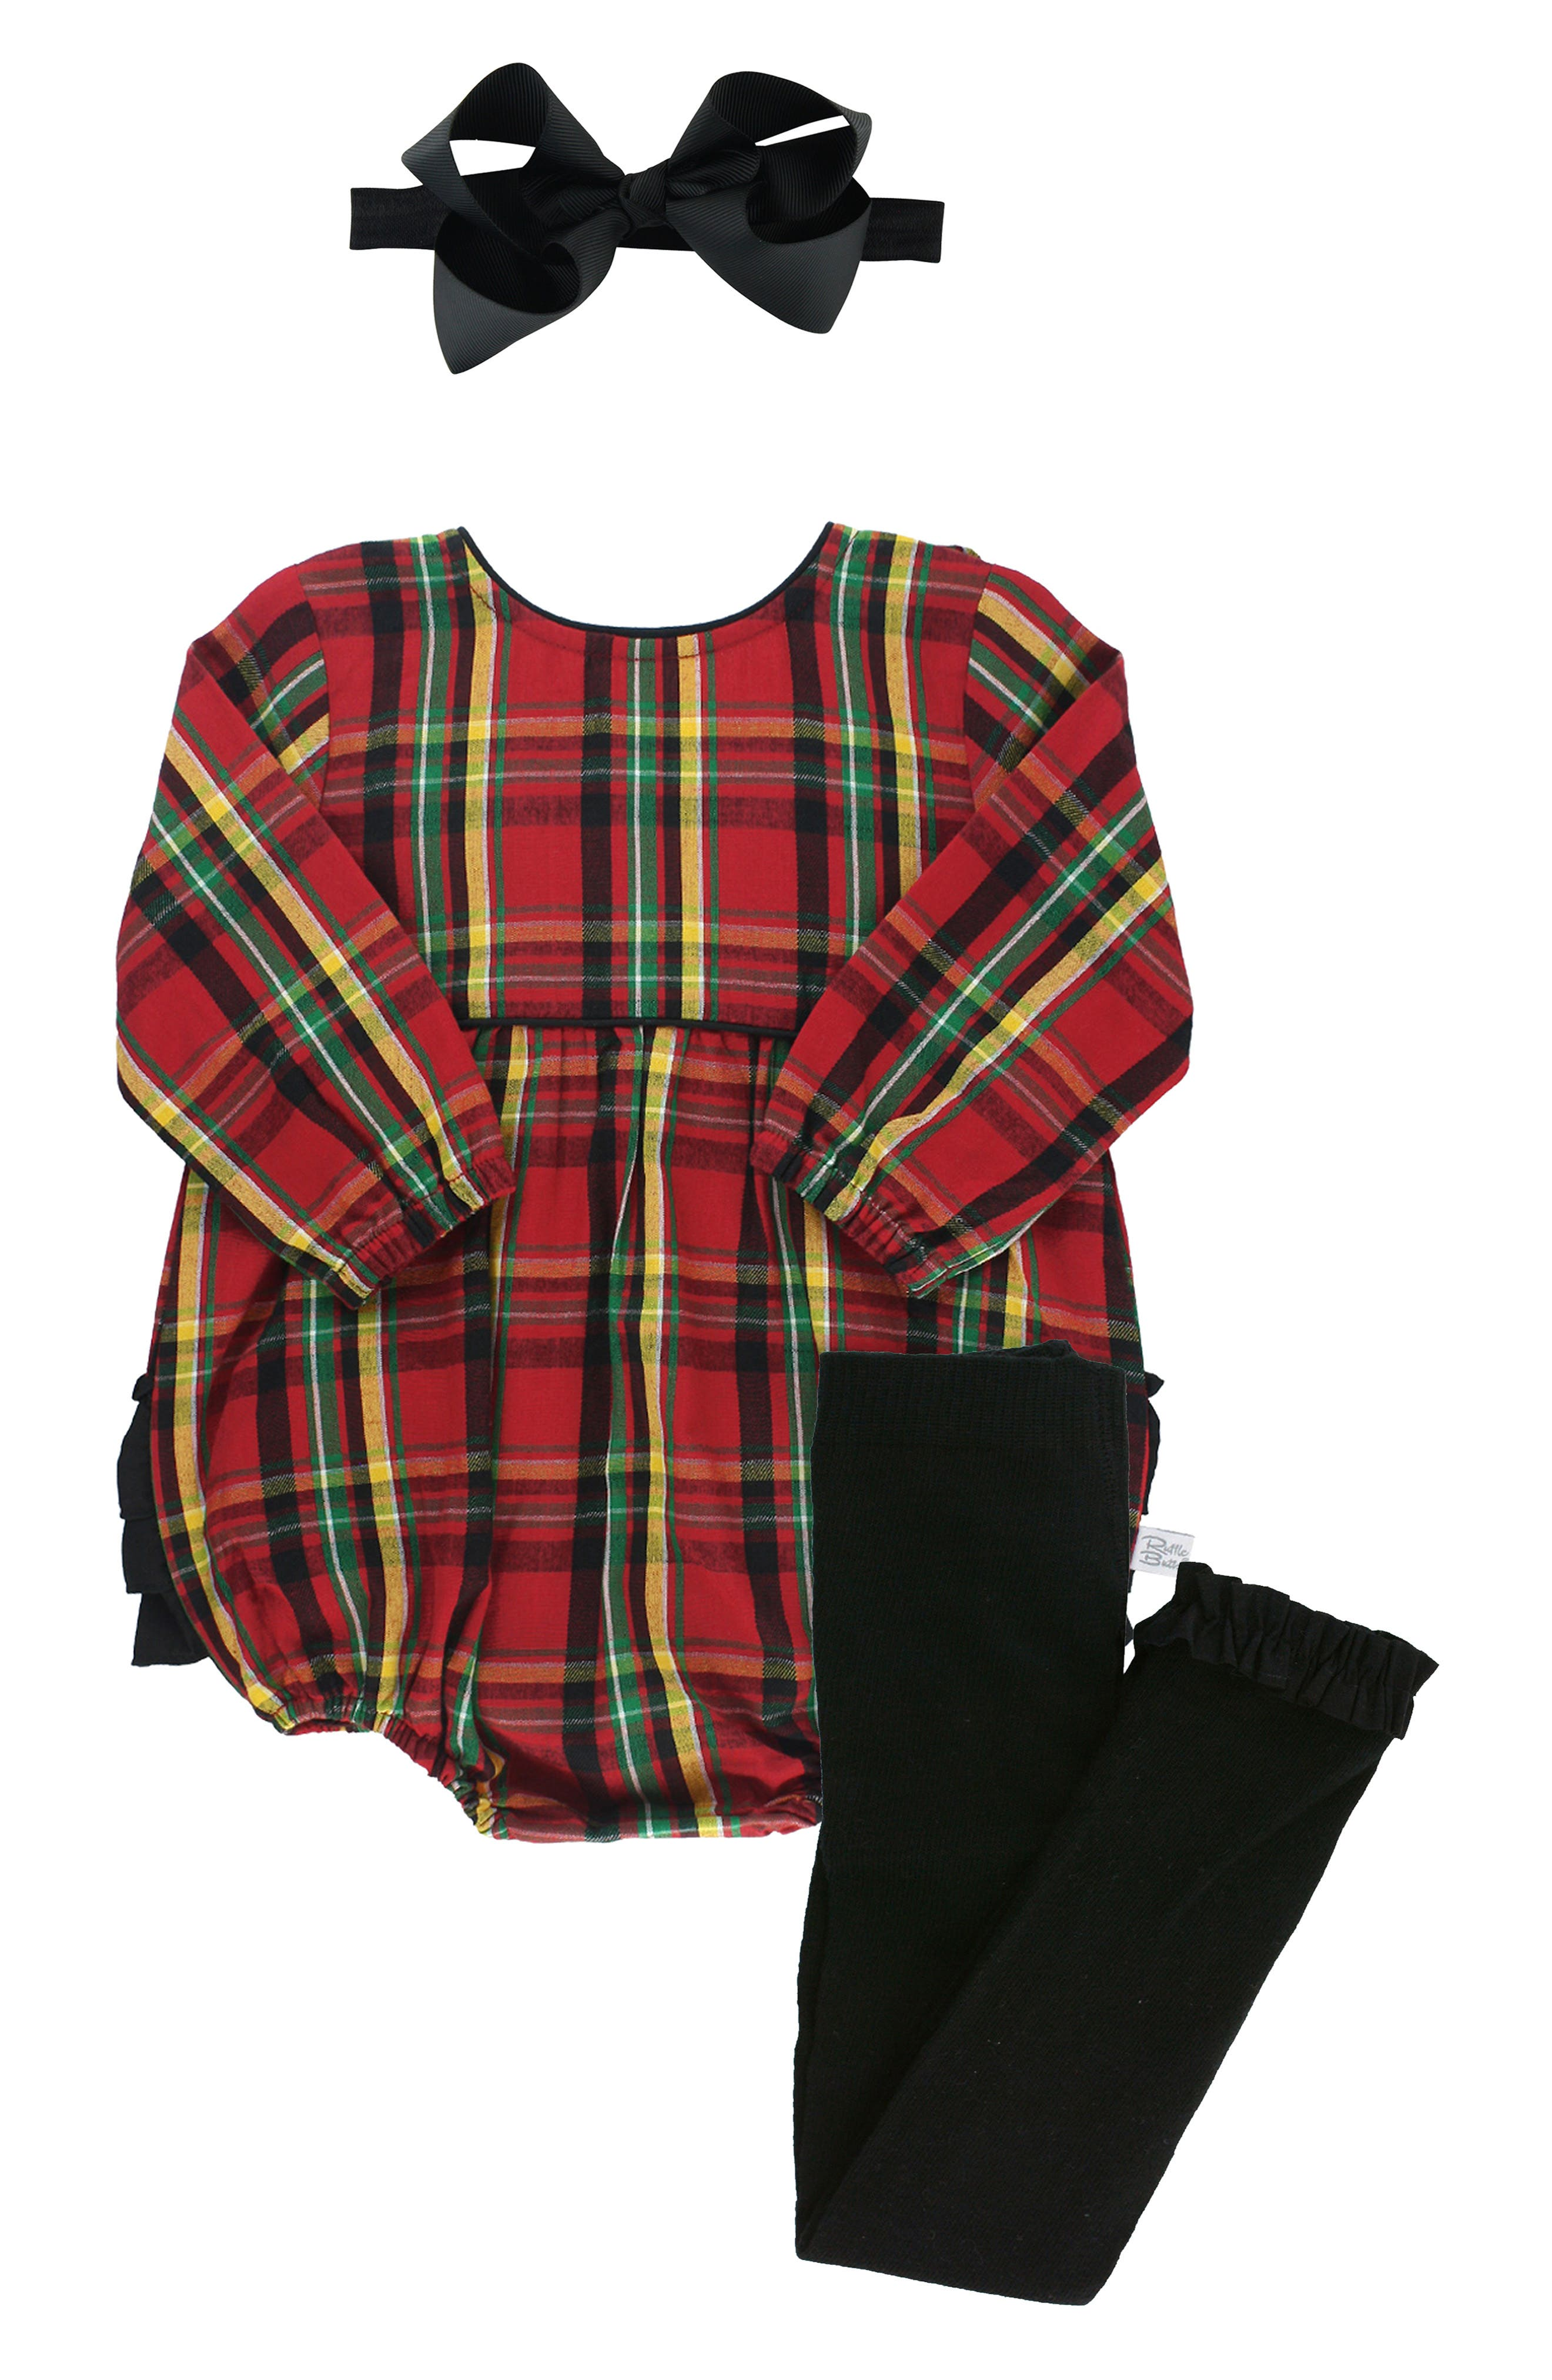 Your little one will be ready for cooler days in this sweet set that pairs a ruffle-bum bubble bodysuit with ruffle-hem tights and a grosgrain-ribbon bow. Style Name: Rufflebutts Remington Plaid Bubble Bodysuit, Tights & Bow Set (Baby). Style Number: 6095675. Available in stores.